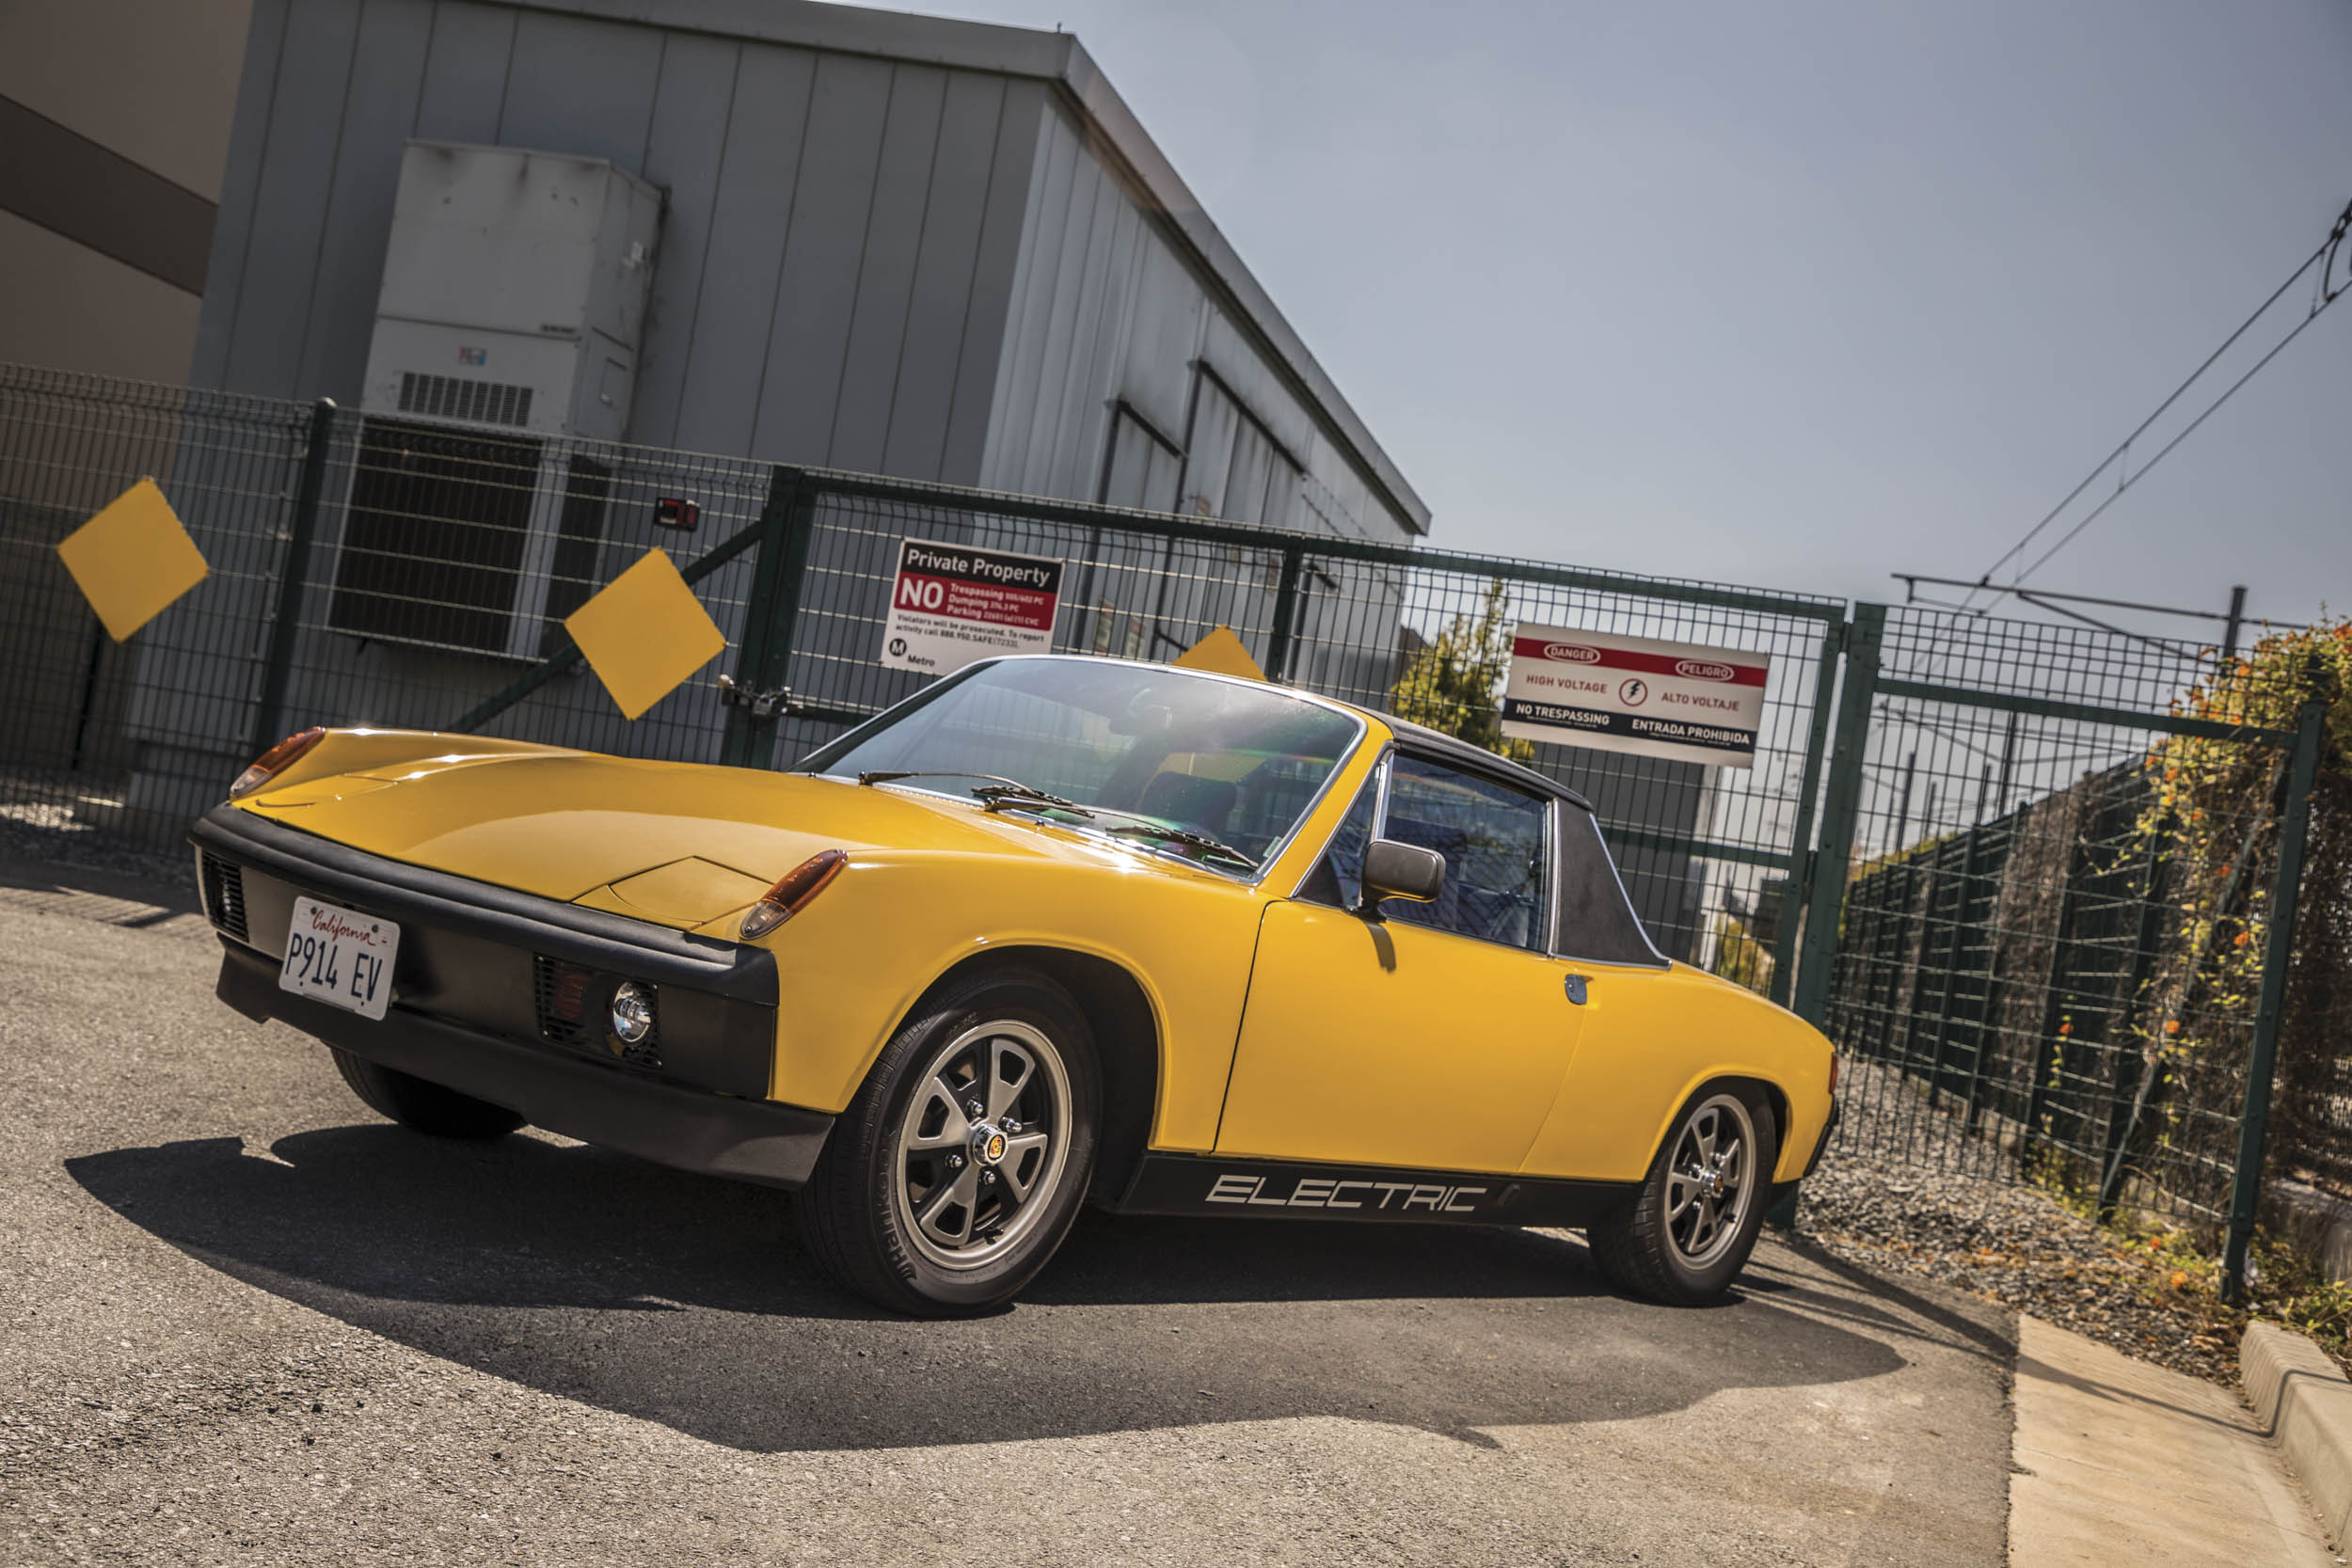 The graphic on the rocker panel of Mark Brems's 914 tells its story